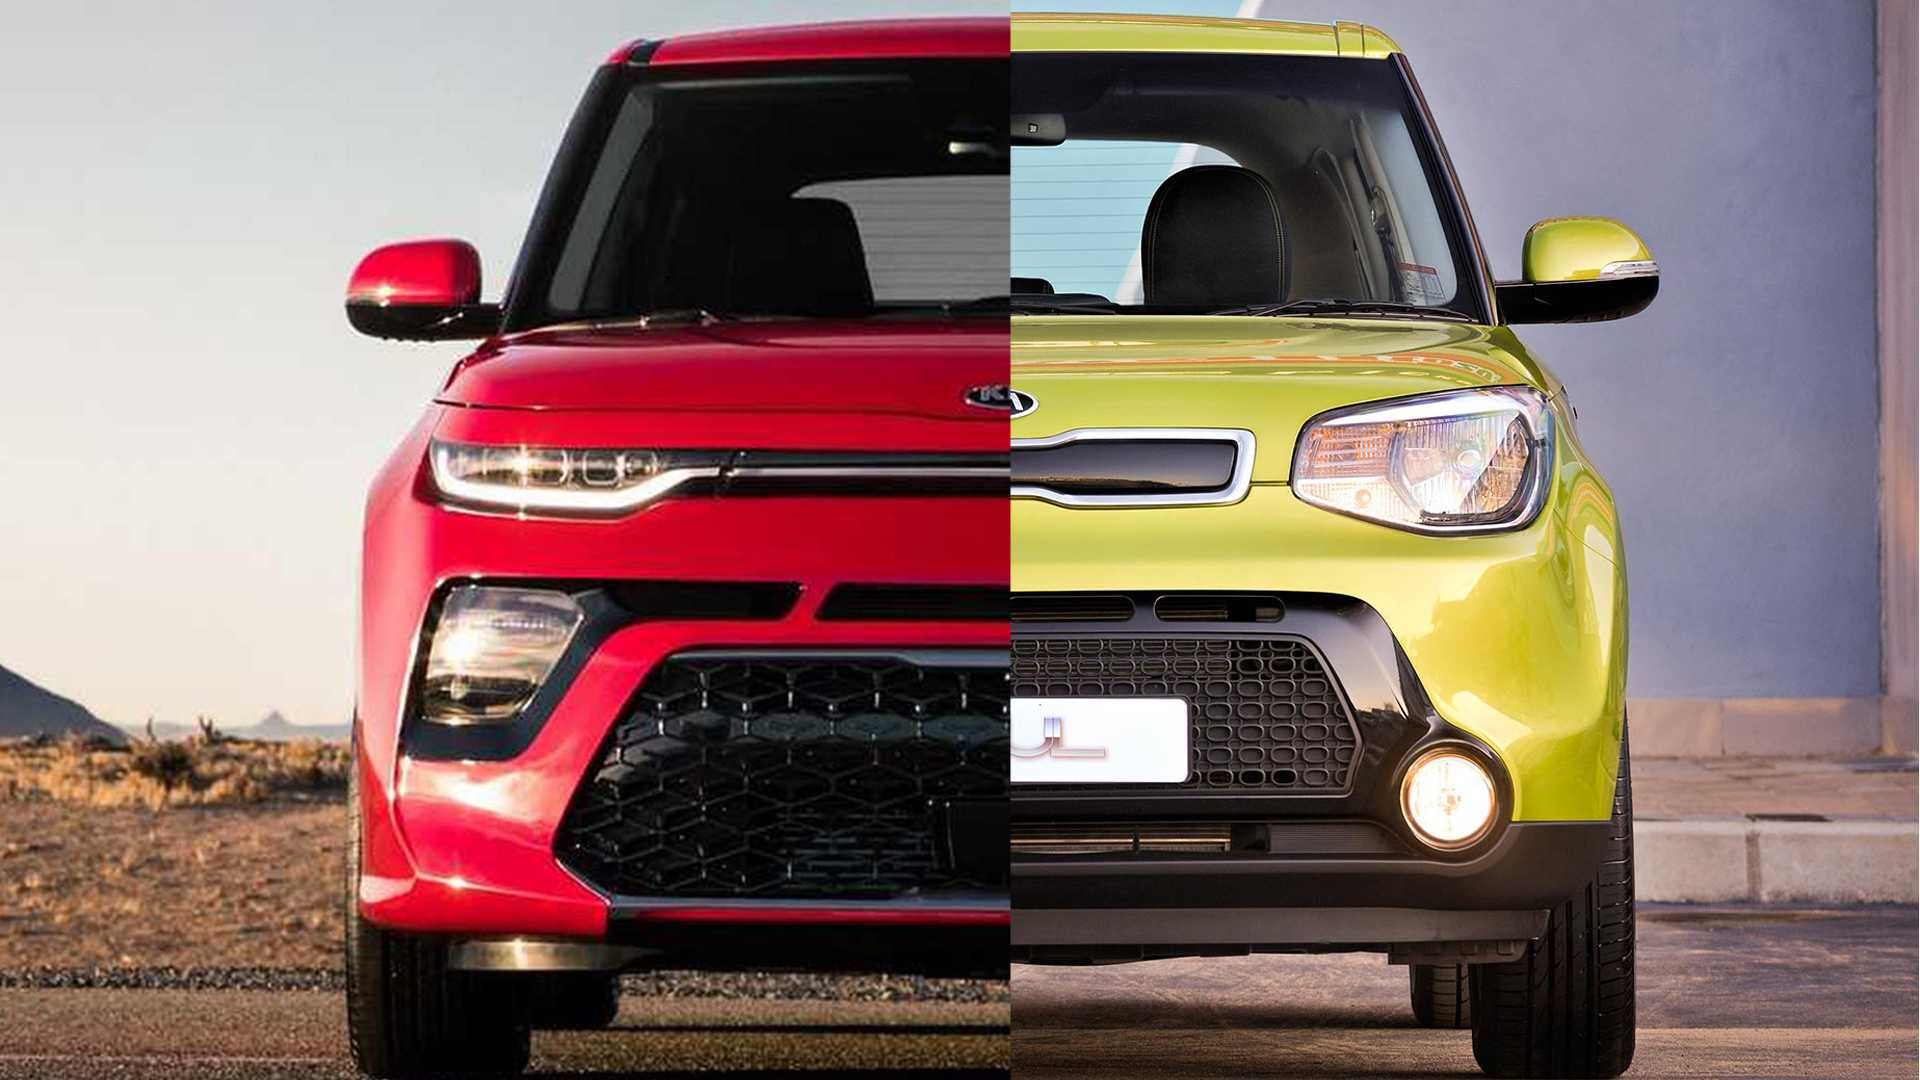 76 All New 2020 Kia Soul Horsepower Release Date